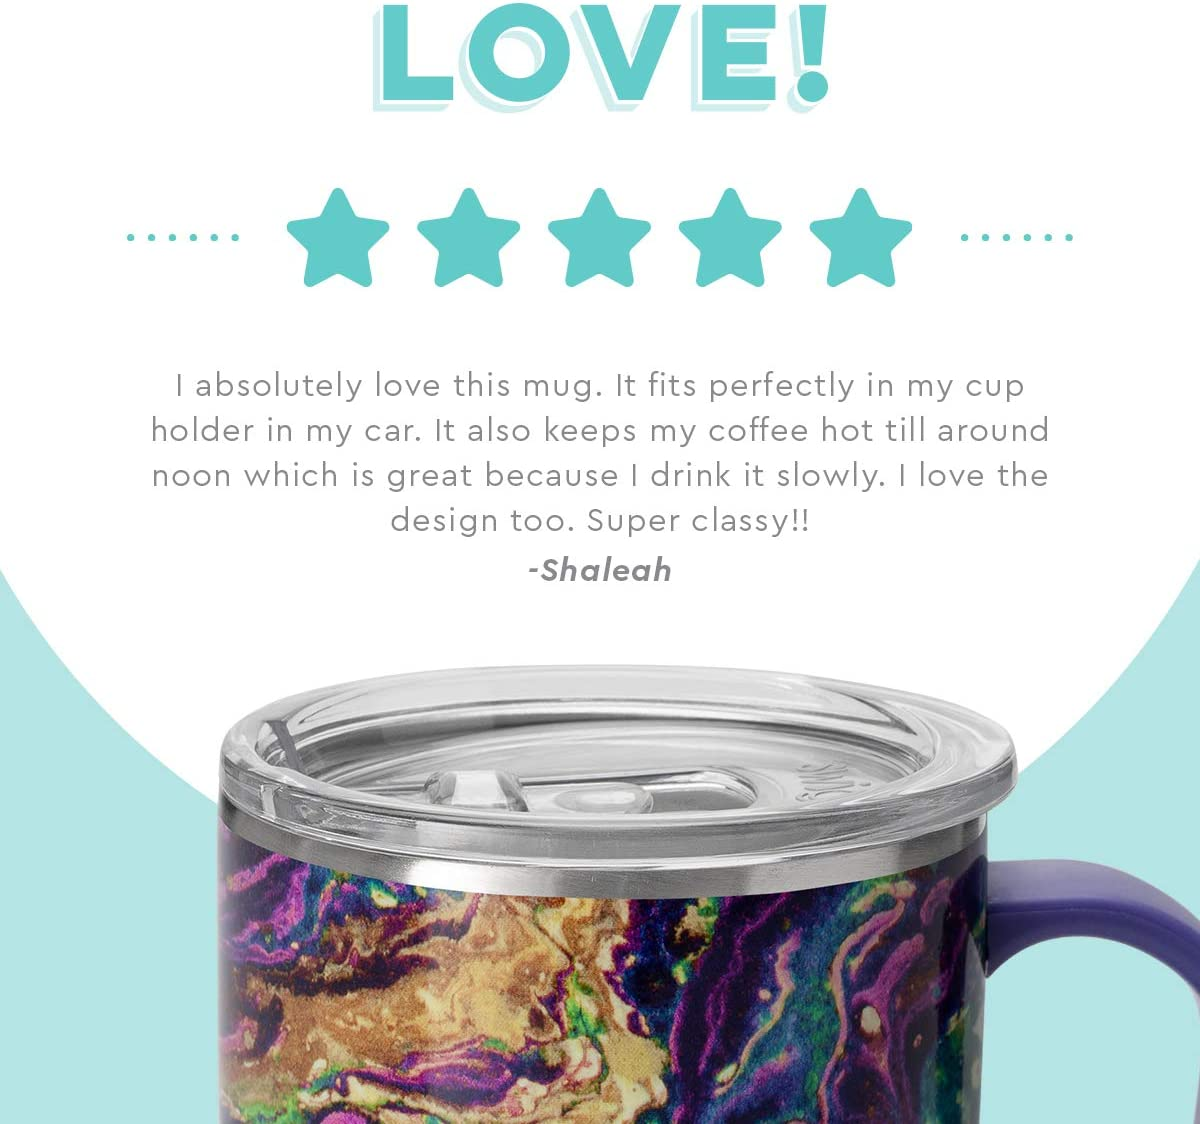 Swig Life 18oz Triple Insulated Travel Mug with Handle and Lid, Dishwasher Safe, Double Wall, and Vacuum Sealed Stainless Steel Coffee Mug